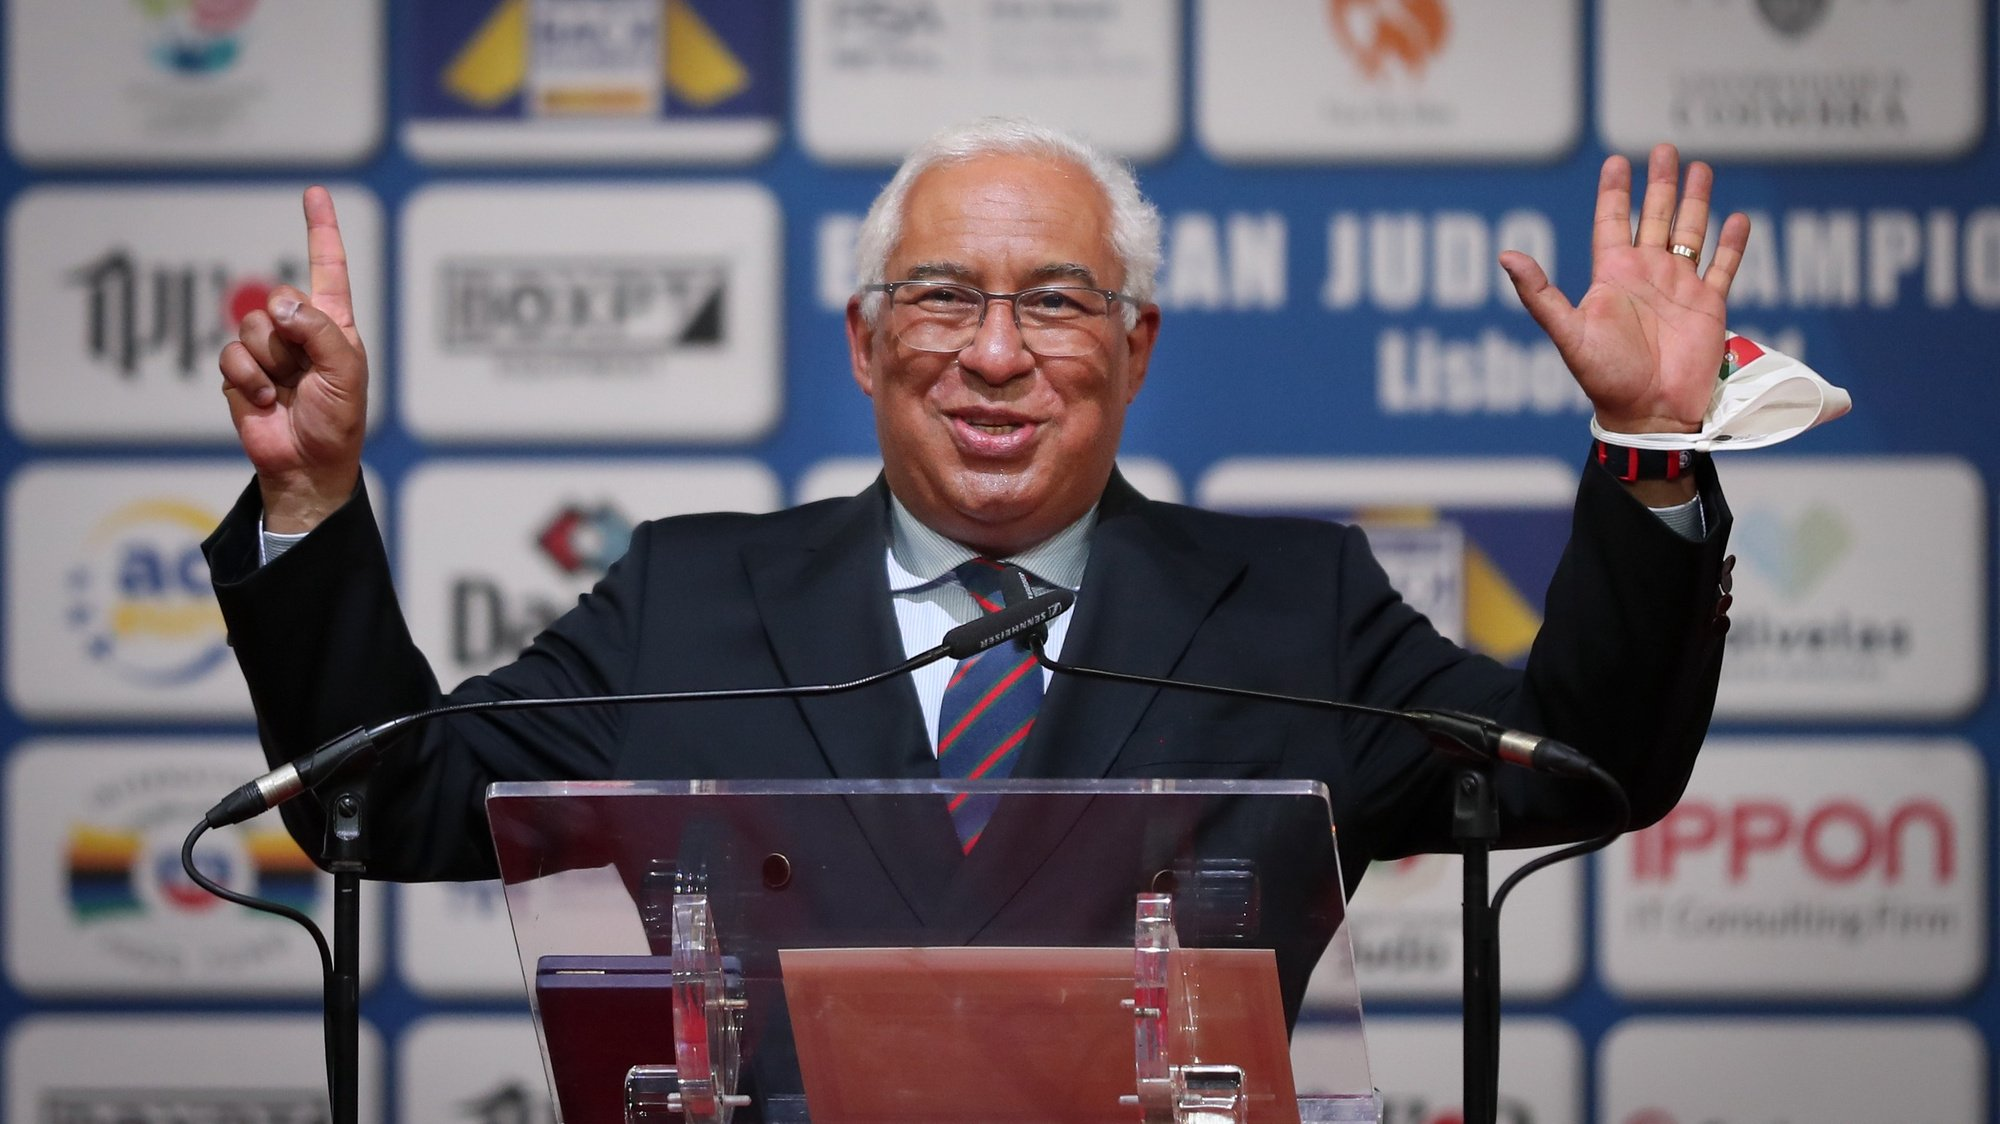 """Portuguese Prime-minister, António Costa, delivers a speech during the awarding ceremony of Telma Monteiro of Portugal, winner of the gold medal in yesterday`s competition in the women's -57Kg category, with the """"Medal of Honor of Sports Merit"""" delivered at the European Judo Championships in Lisbon, Portugal, 17 April 2021. NUNO VEIGA/LUSA"""